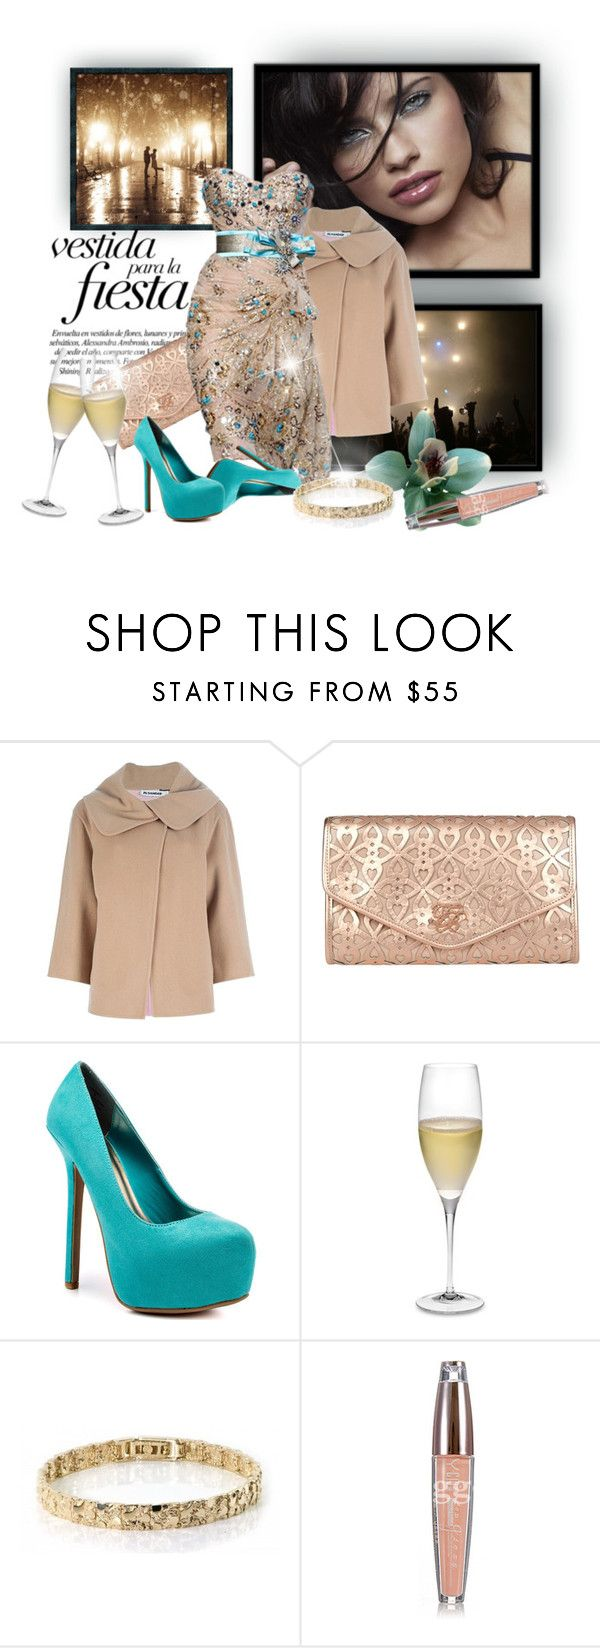 """""""Untitled #52"""" by adventureofaday ❤ liked on Polyvore featuring DuÅ¡an, Jil Sander, Ted Baker, JustFab and Riedel"""